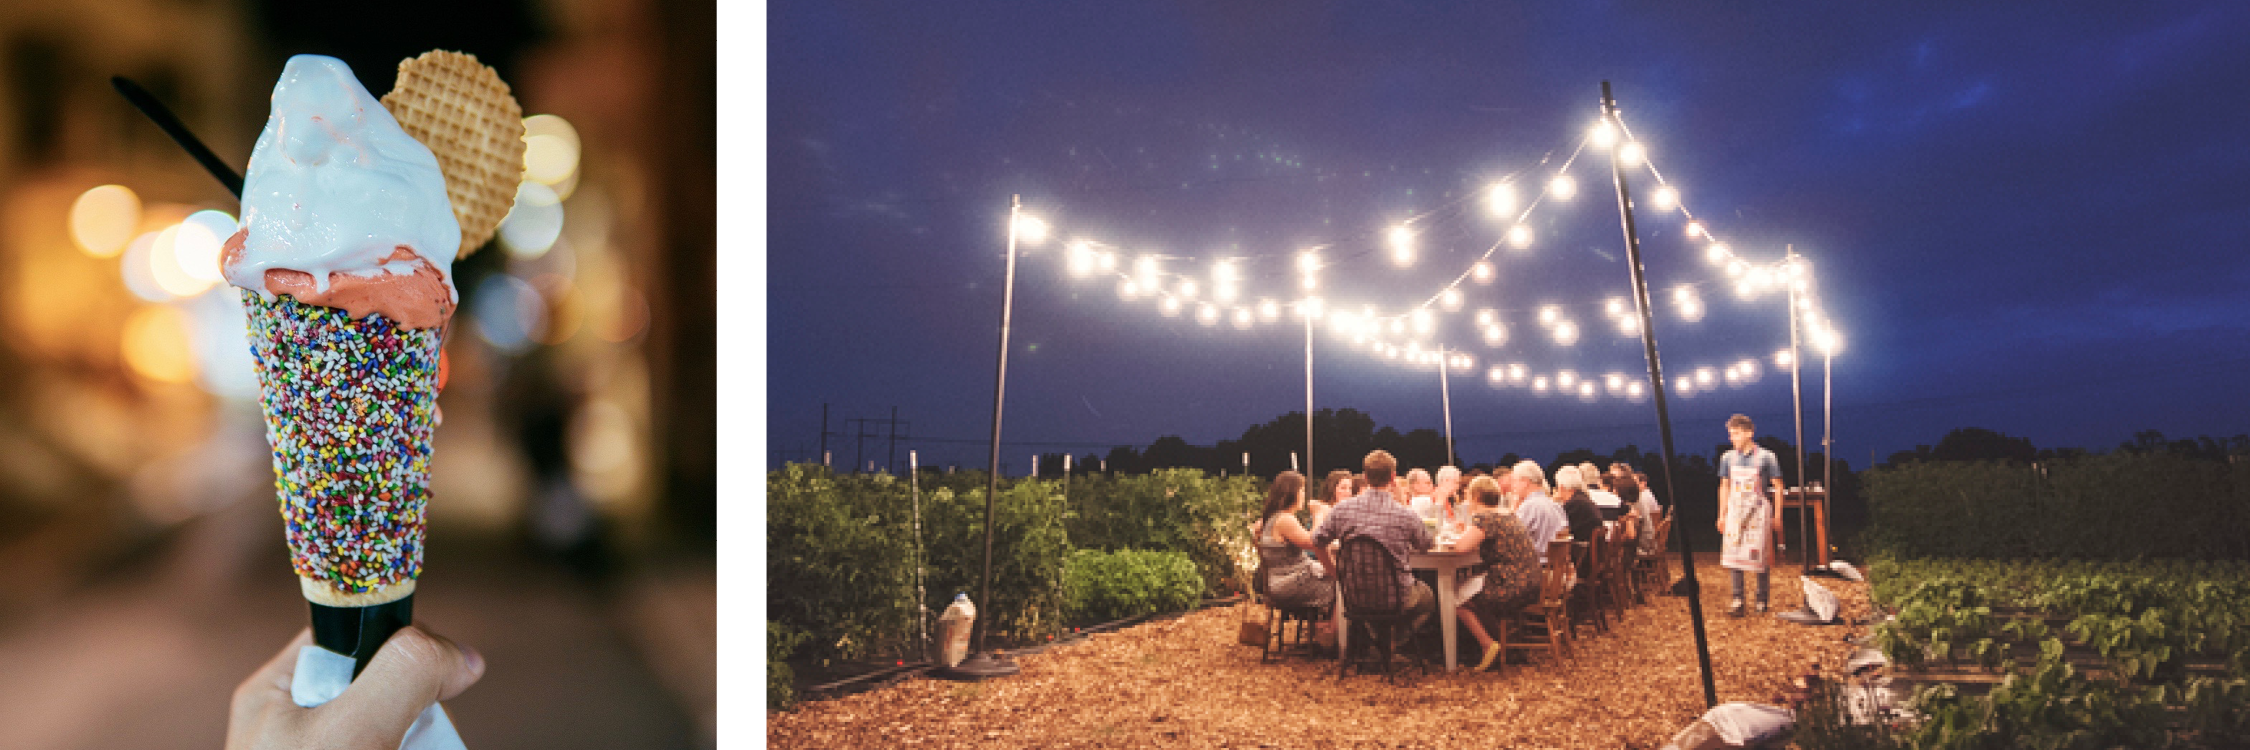 Outdoor Image: Dinner in the Field (Richmond)